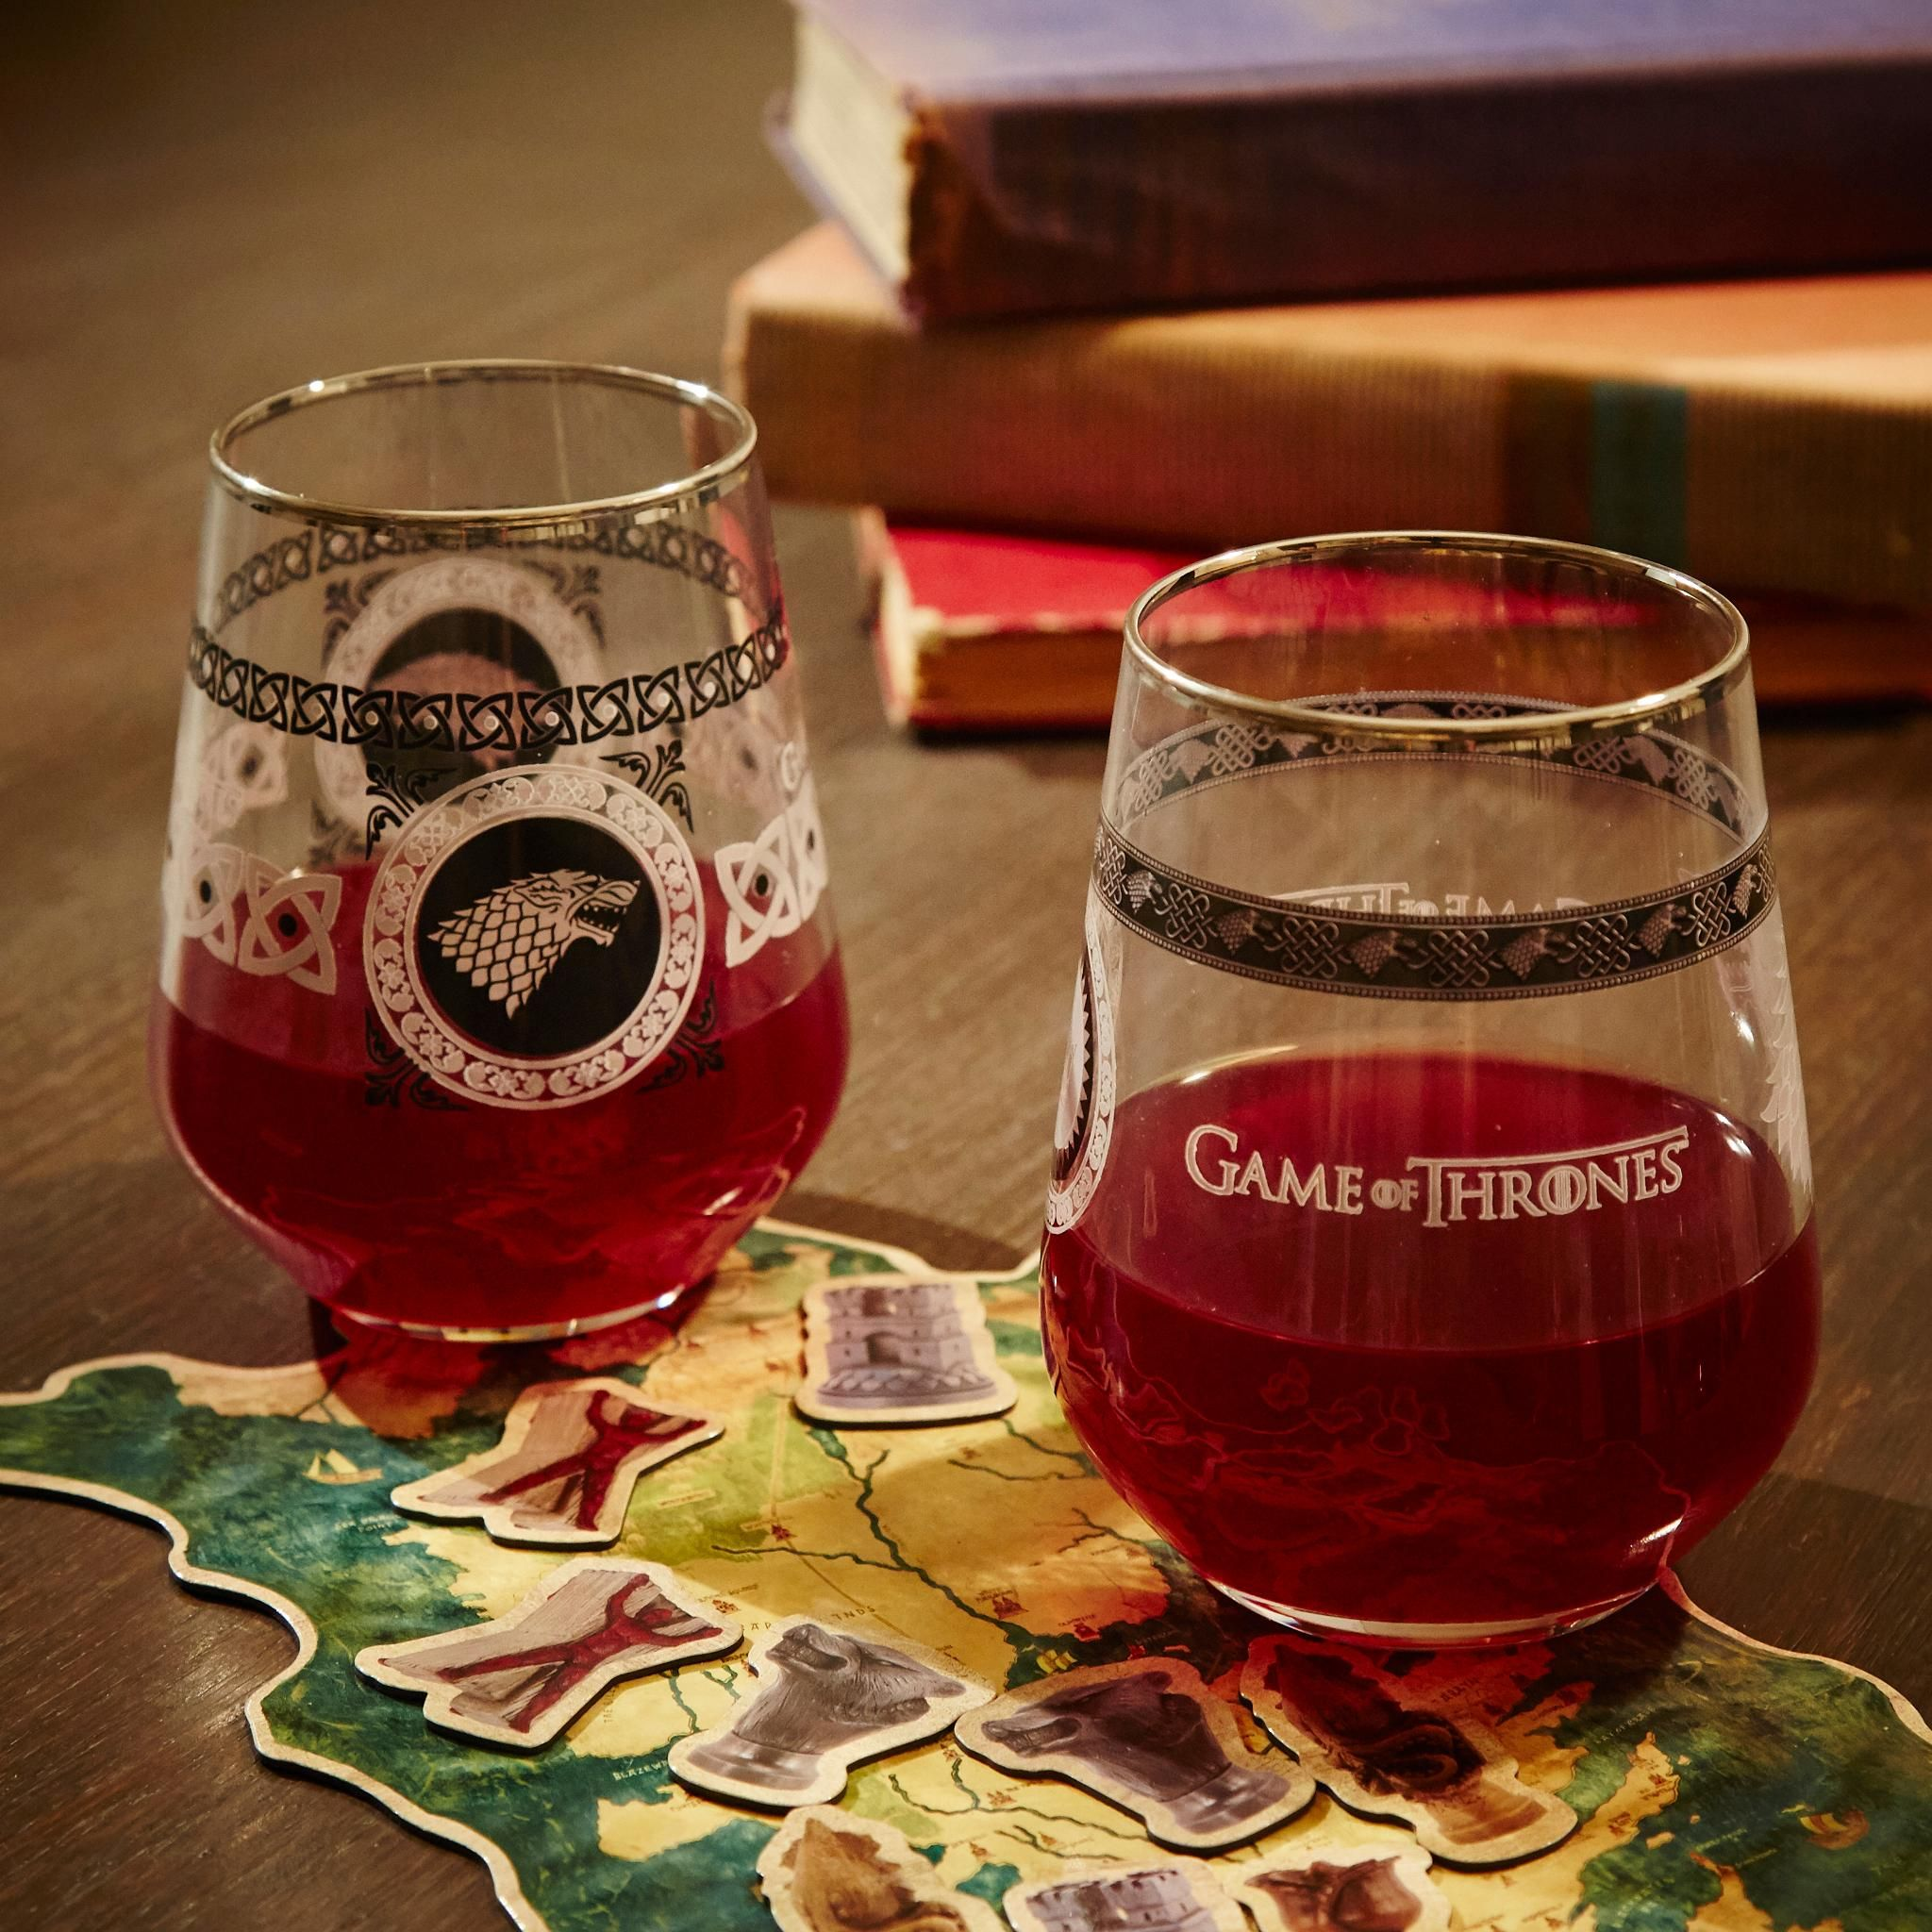 Game Of Throne House Stark Wine Glasses Game Of Thrones Party Game Of Thrones Houses Game Of Thrones